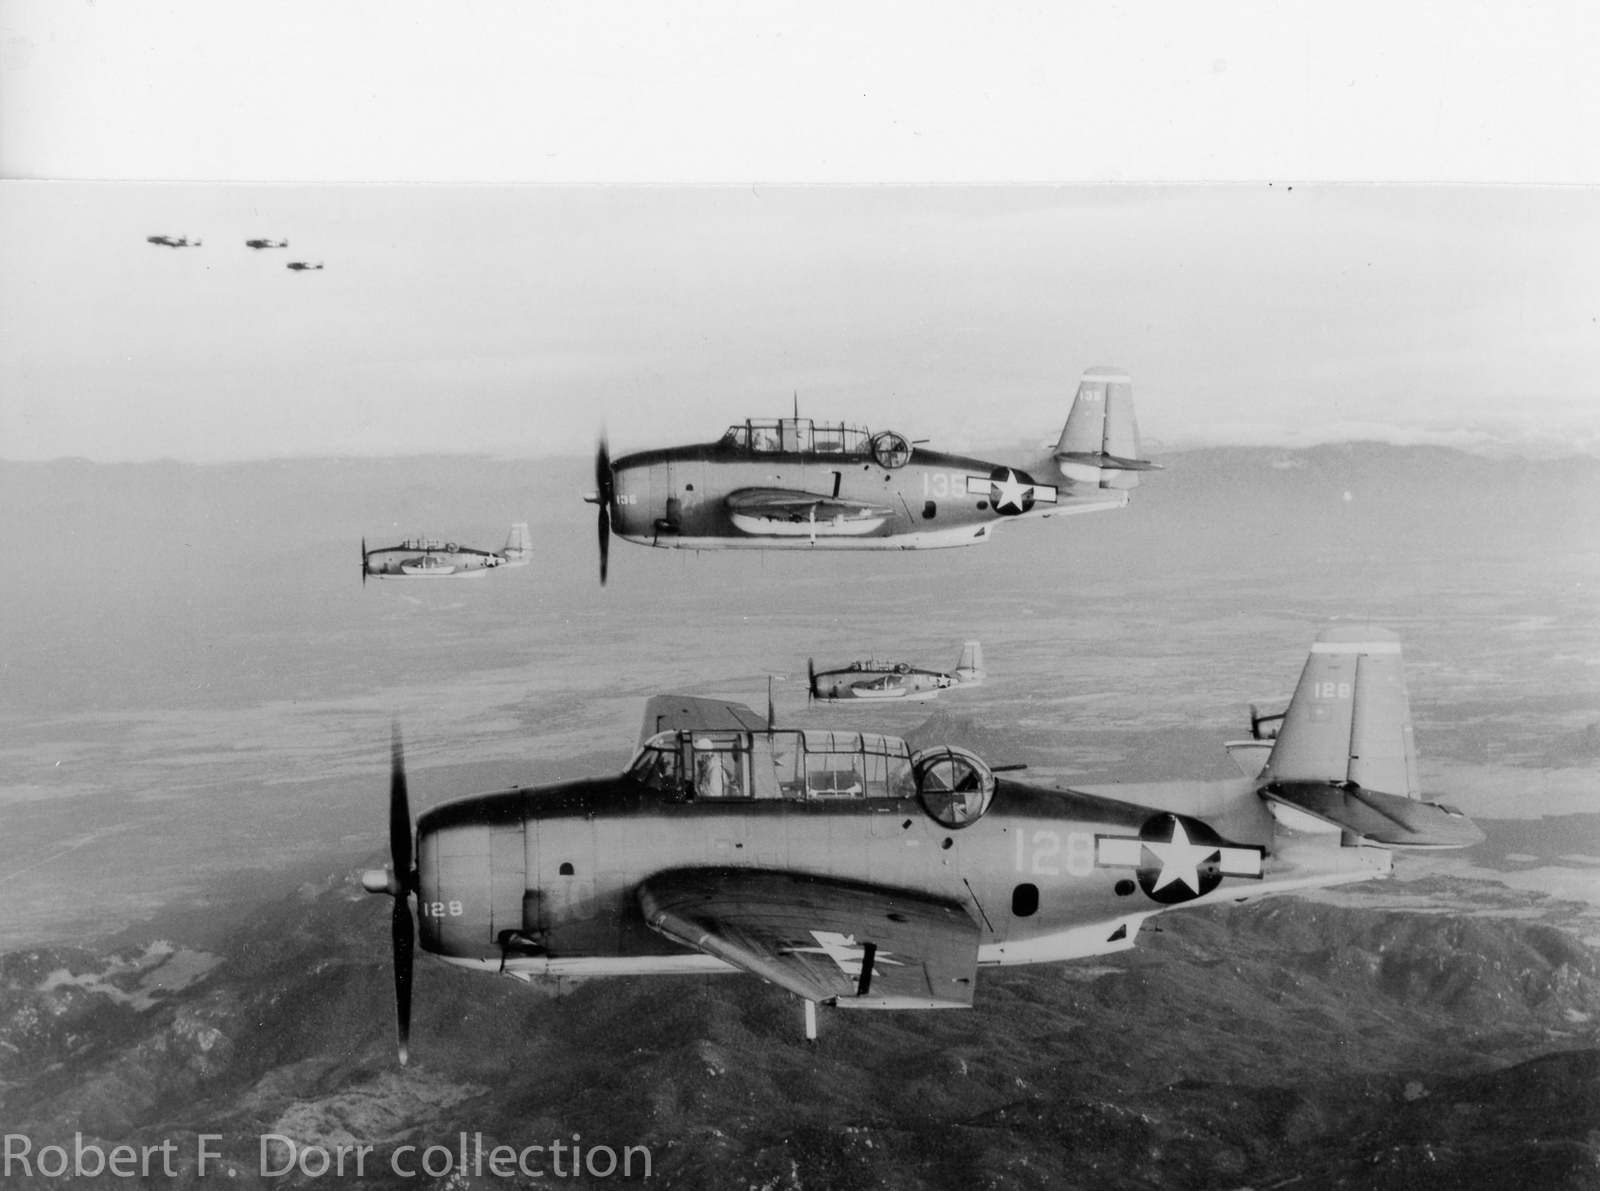 These are TBM-3 Avengers of squadron VT-4 from USS Essex (CV 9) on a combat mission in the Philippines on January 12, 1945. (U.S. Navy photo via Robert F. Dorr collection)